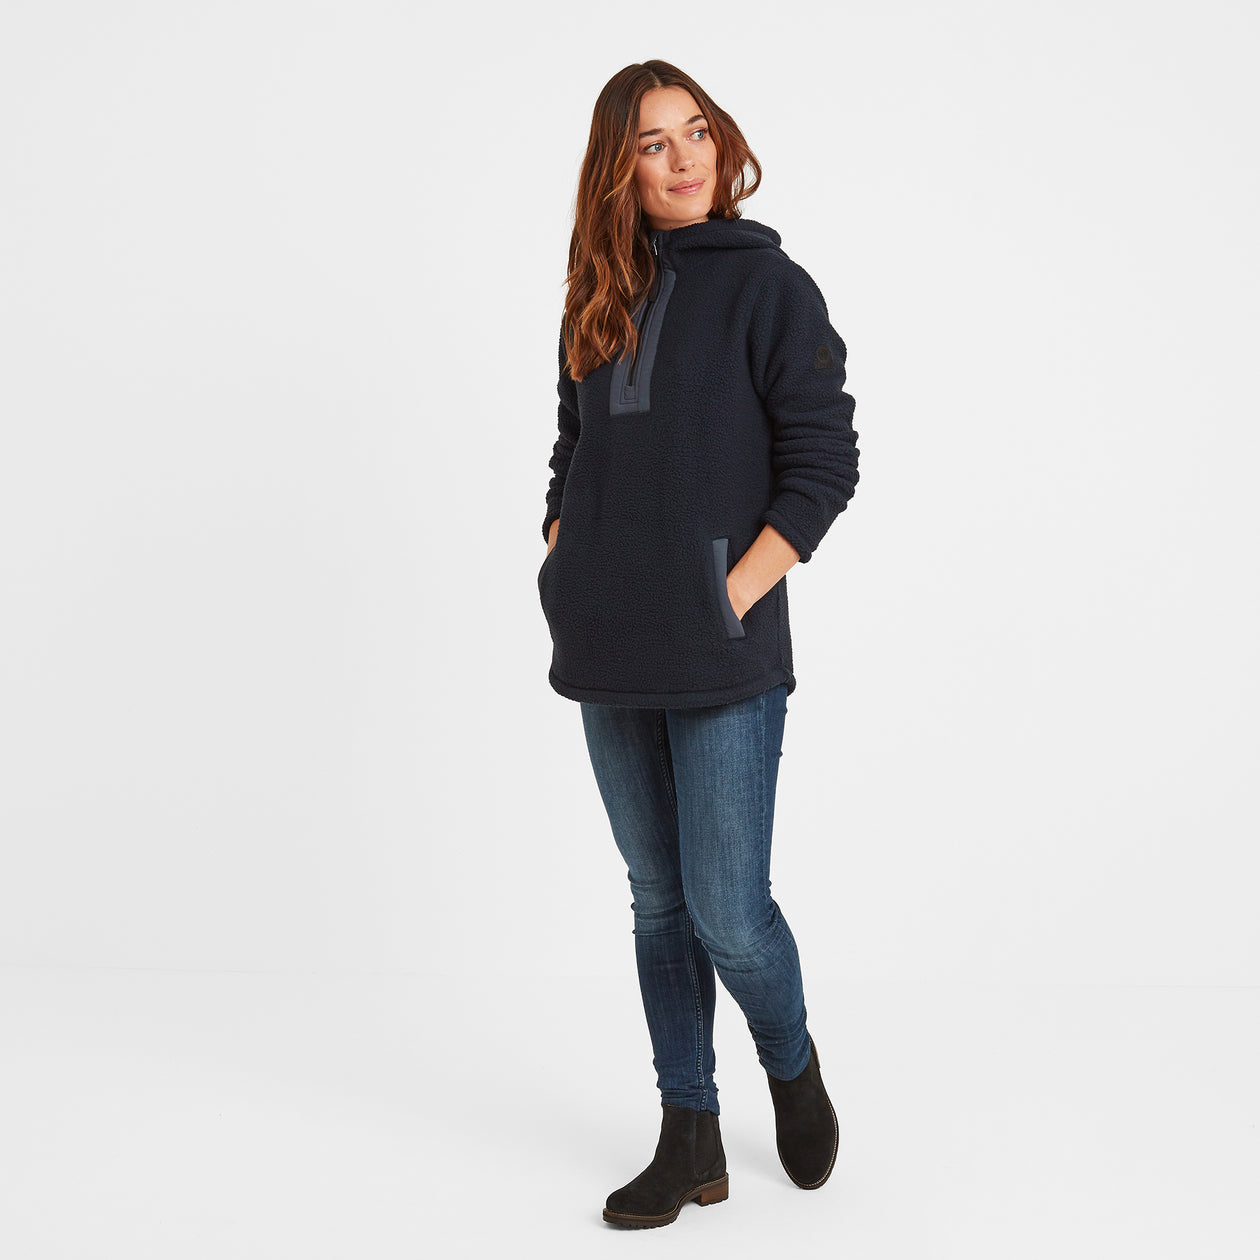 Albones Womens Sherpa Fleece Hooded Zipneck - Dark Indigo image 4